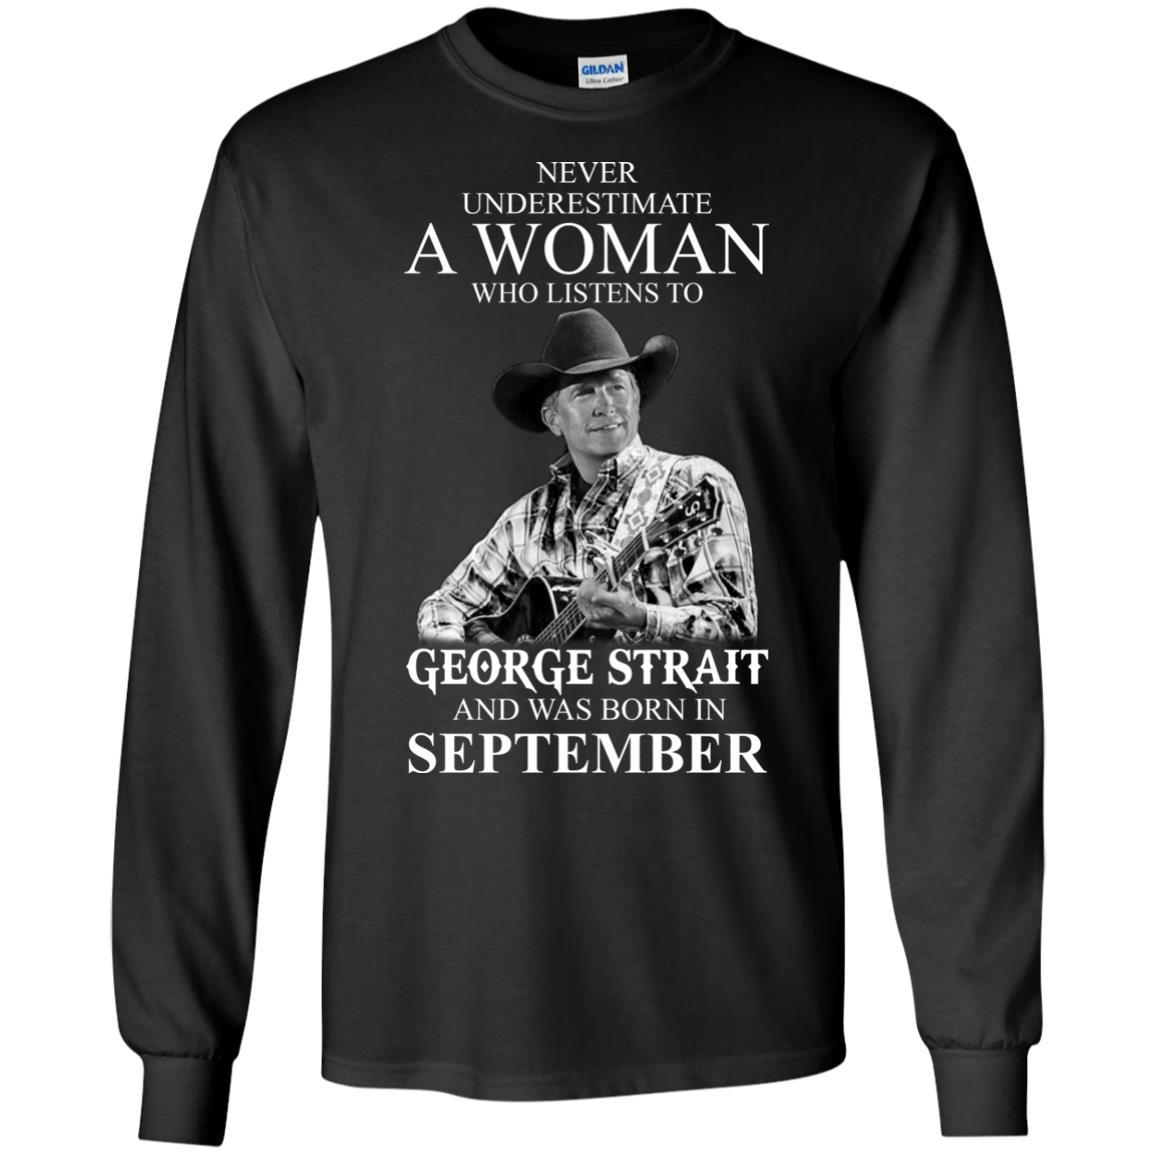 image 376 - Never Underestimate A Woman Who Listens To George Strait And Was Born In September shirt